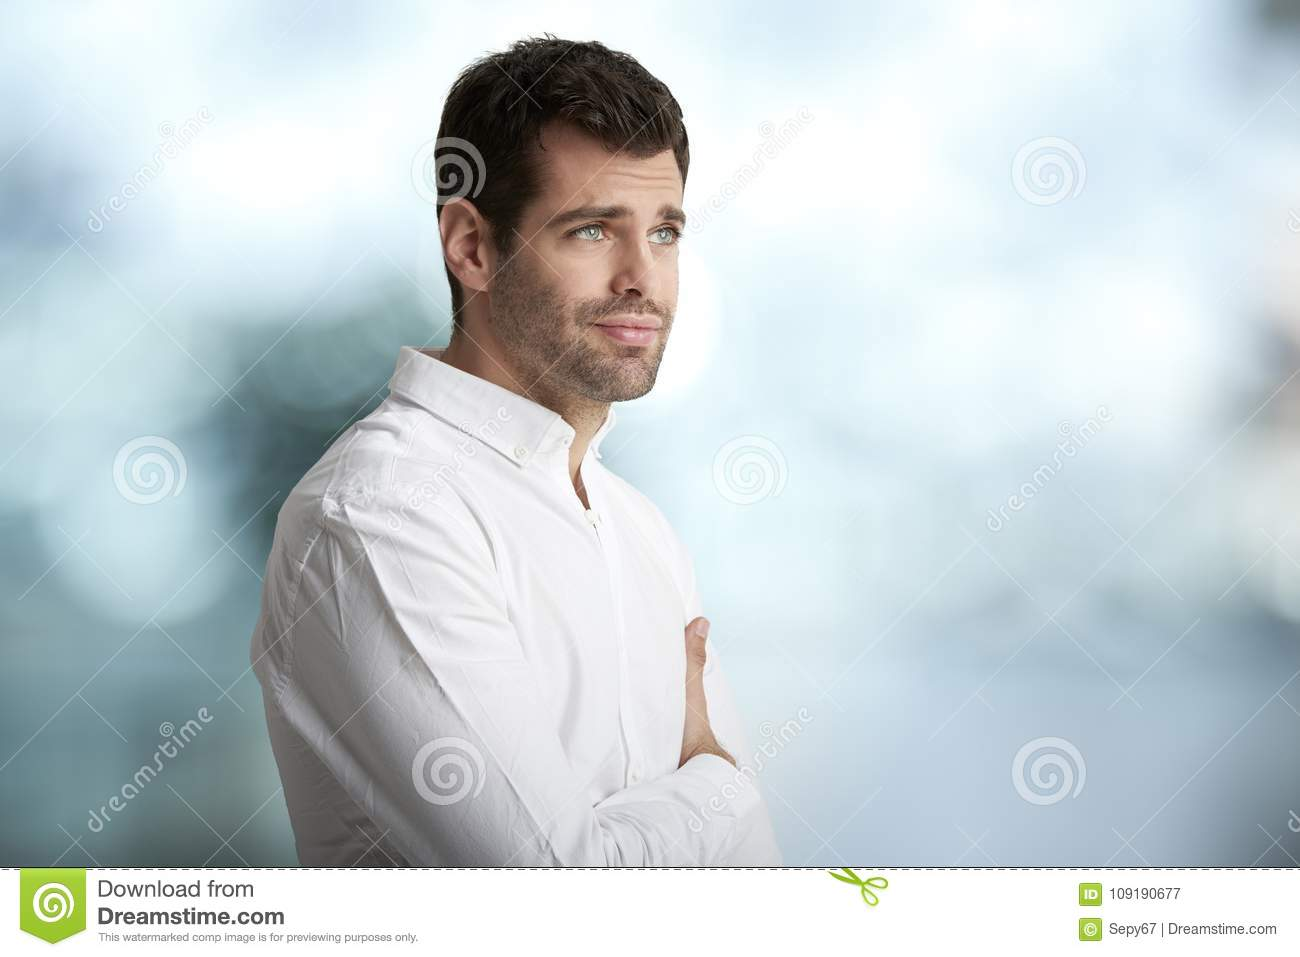 Worried young man portrait